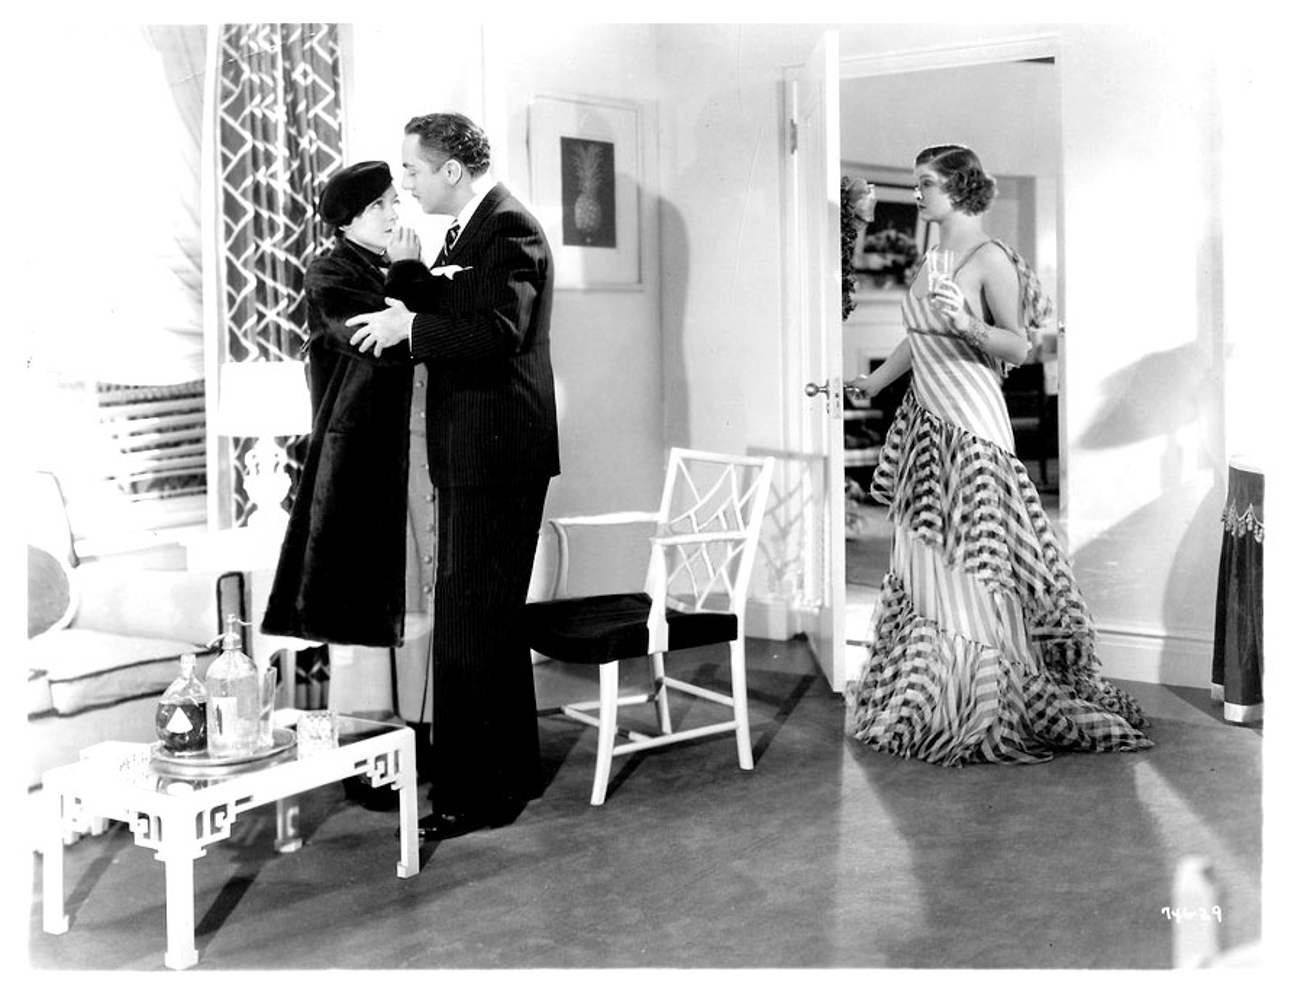 the thin man 1934 scene still photo 746-29